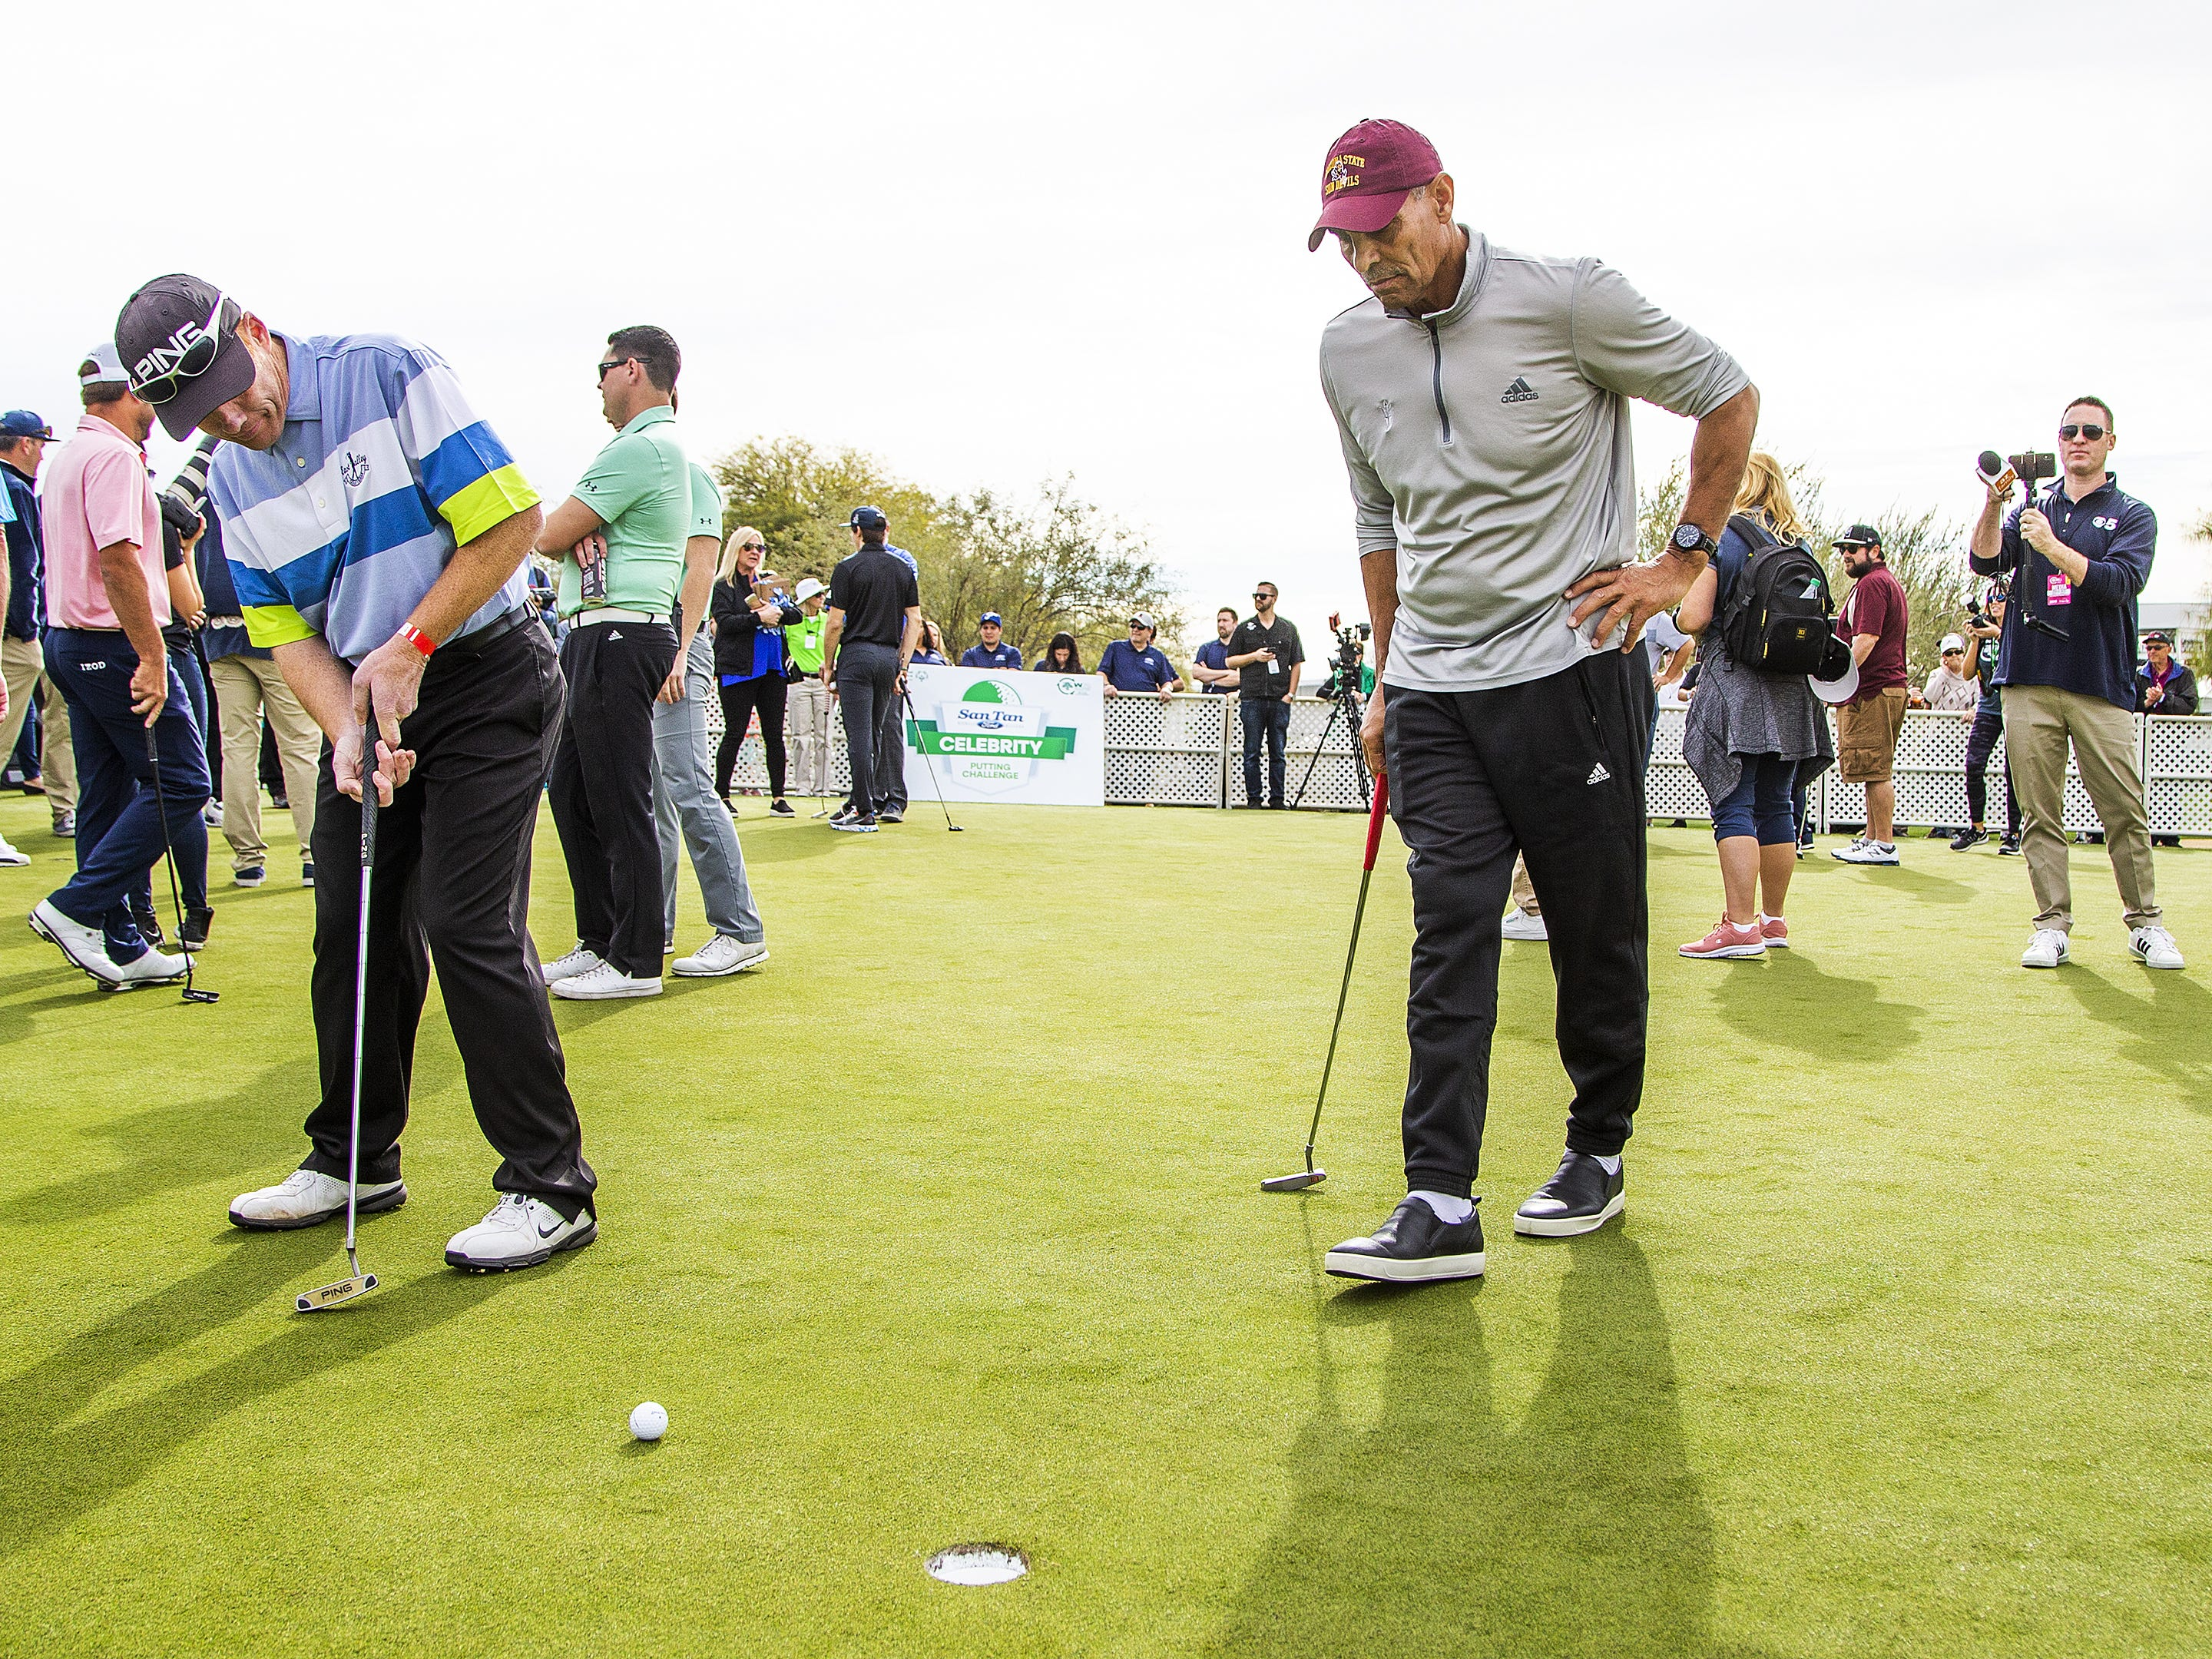 Brian Jantzen, Gilbert, left, putts as his partner, ASU head coach Herm Edwards watches during the San Tan Ford Special Olympics Open at the Waste Management Phoenix Open at the TPC Scottsdale, Tuesday, January 29, 2019.